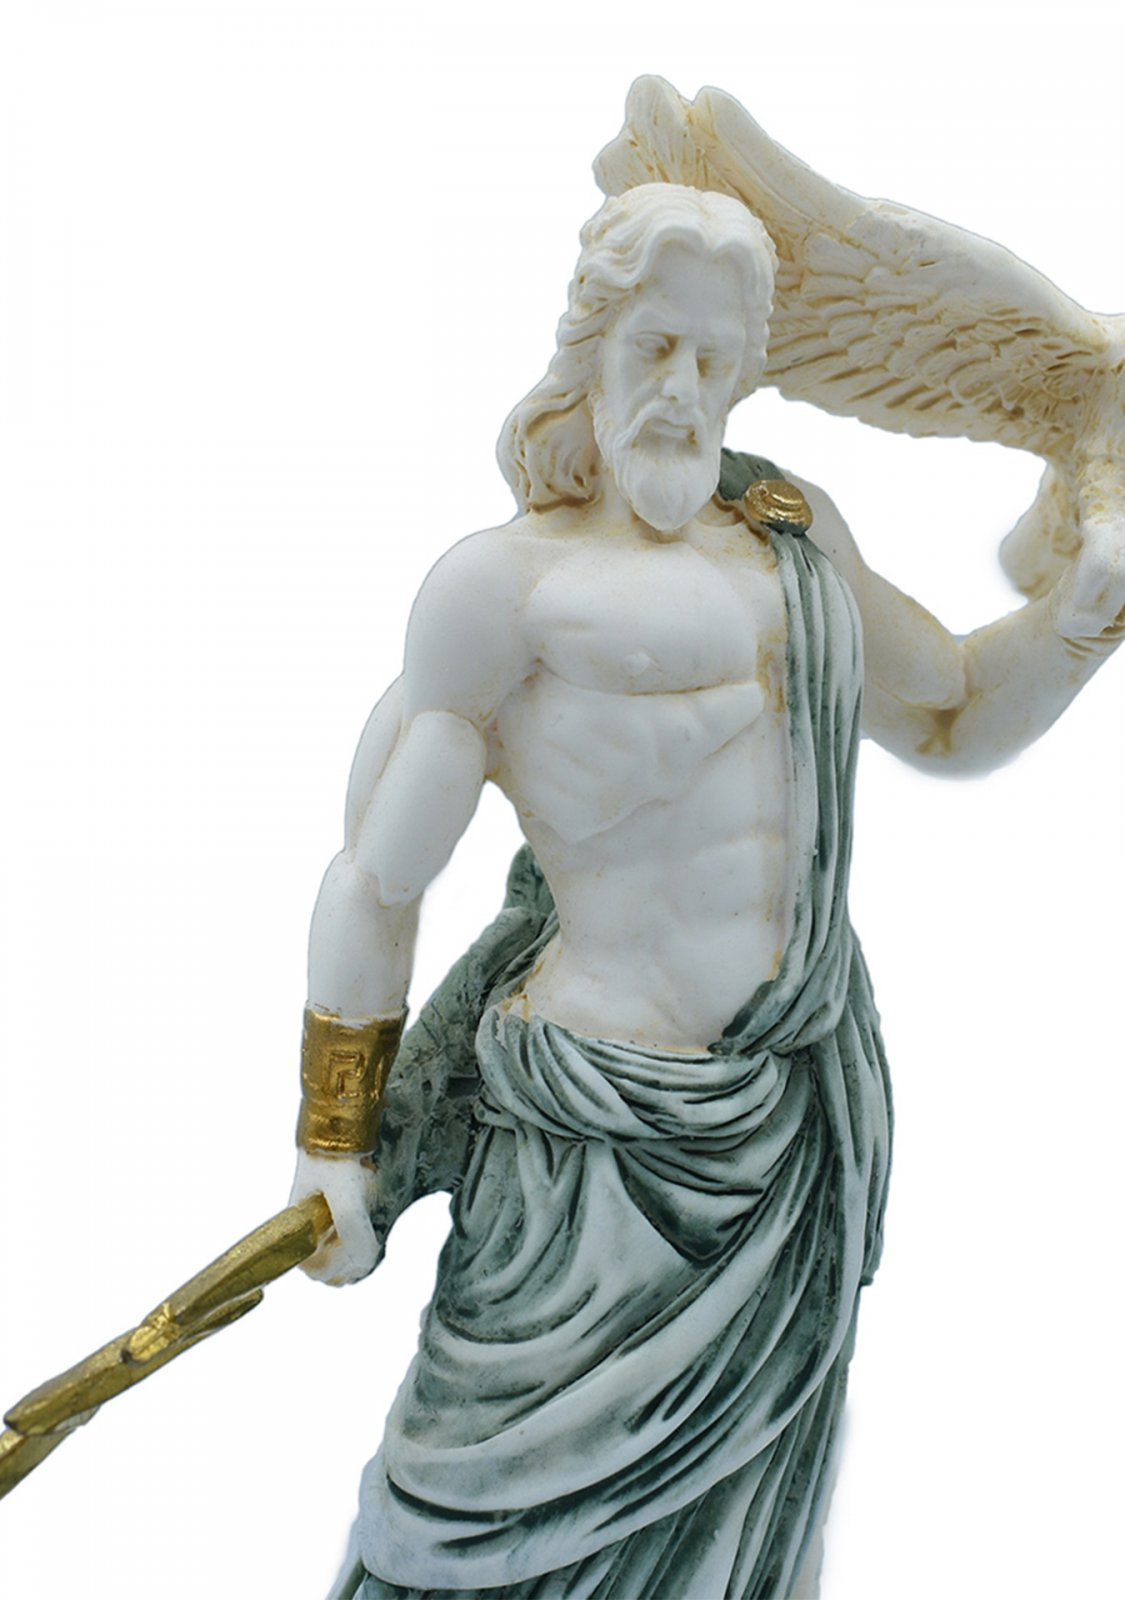 Zeus, the Father of Gods, greek alabaster statue with green color and patina